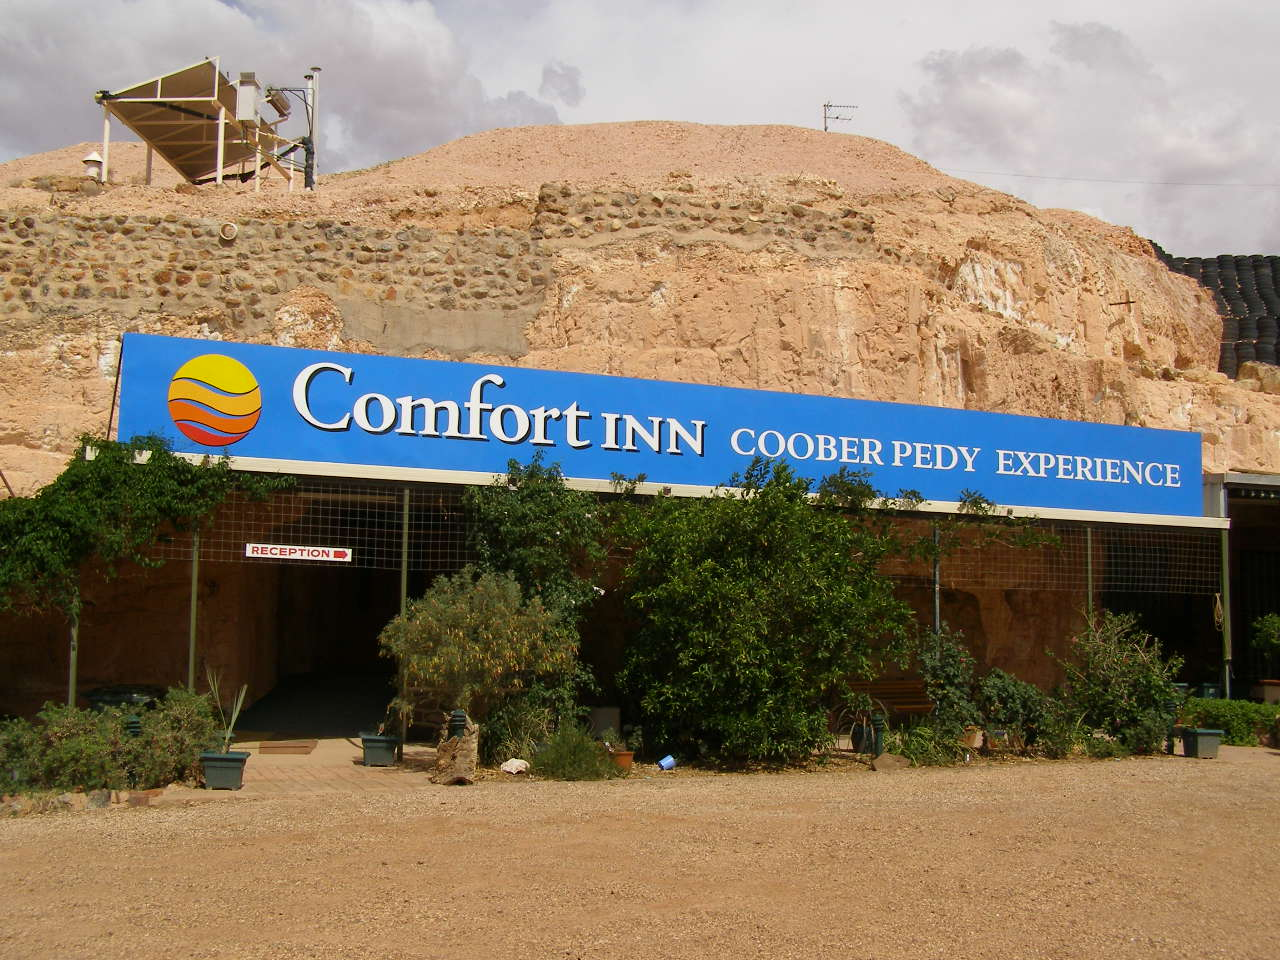 essays on coober peddy We launched the films at the coober pedy drive in as part of the 2015 centenary of opal in coober pedy the films and photo essays big stories wishes to.